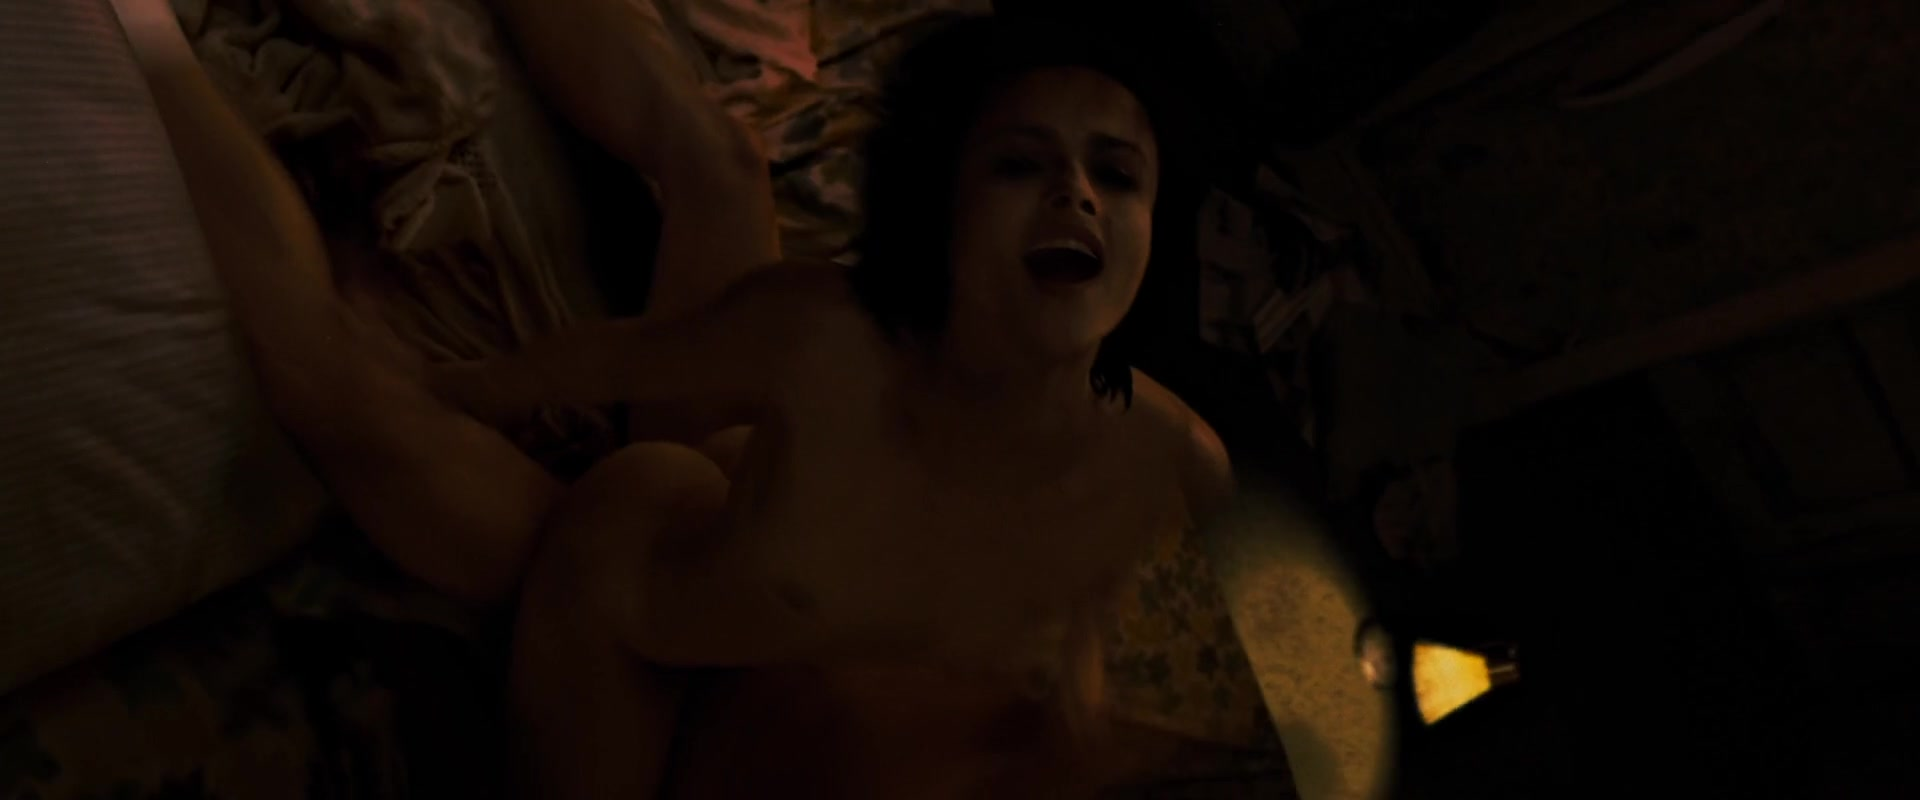 Helena bonham carter sex scene videos